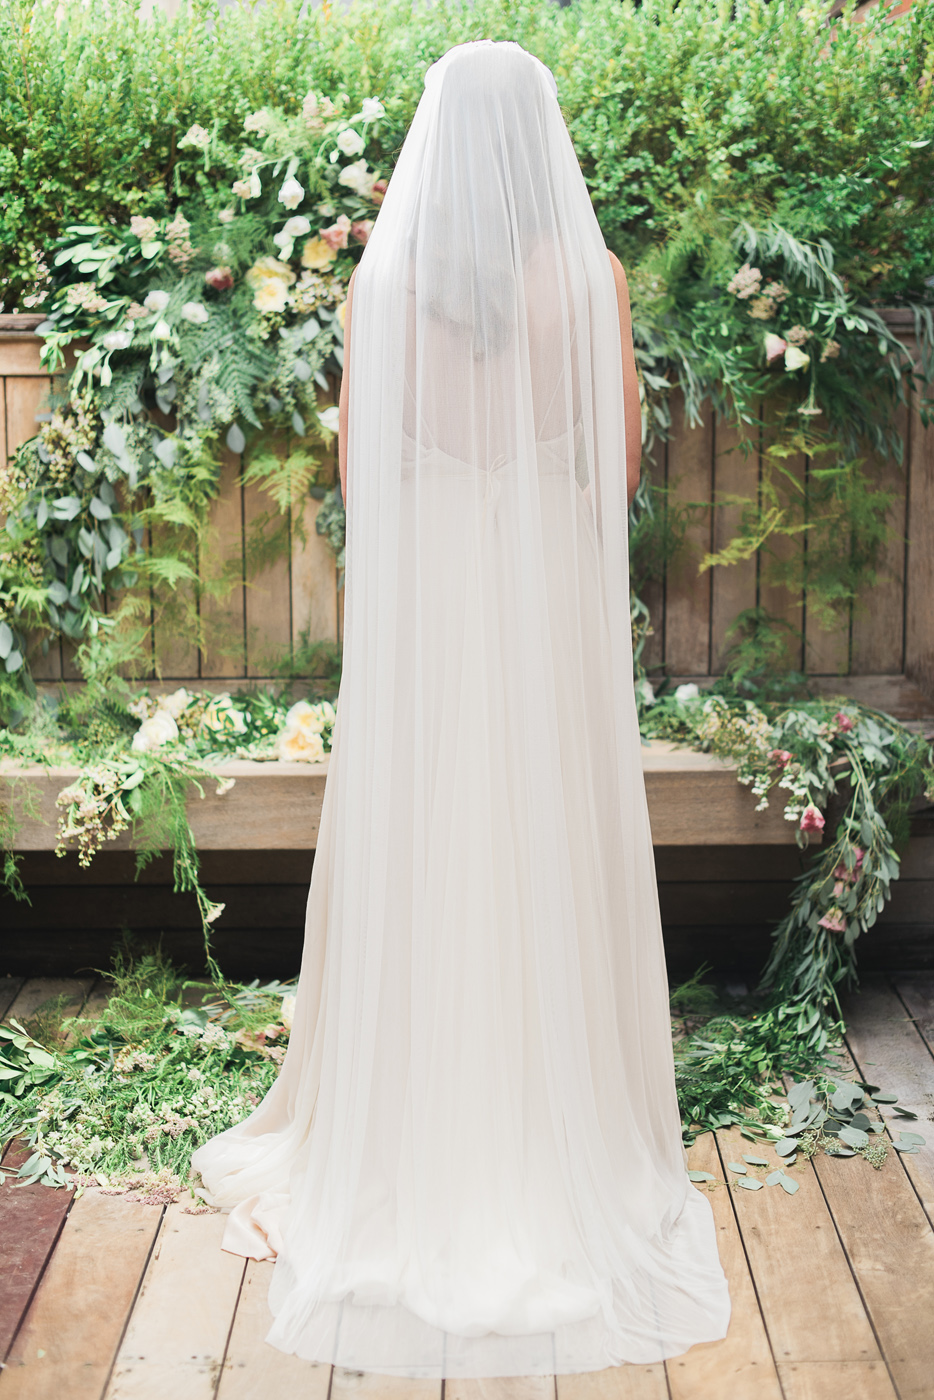 silk tulle veil back detail by hushed commotion